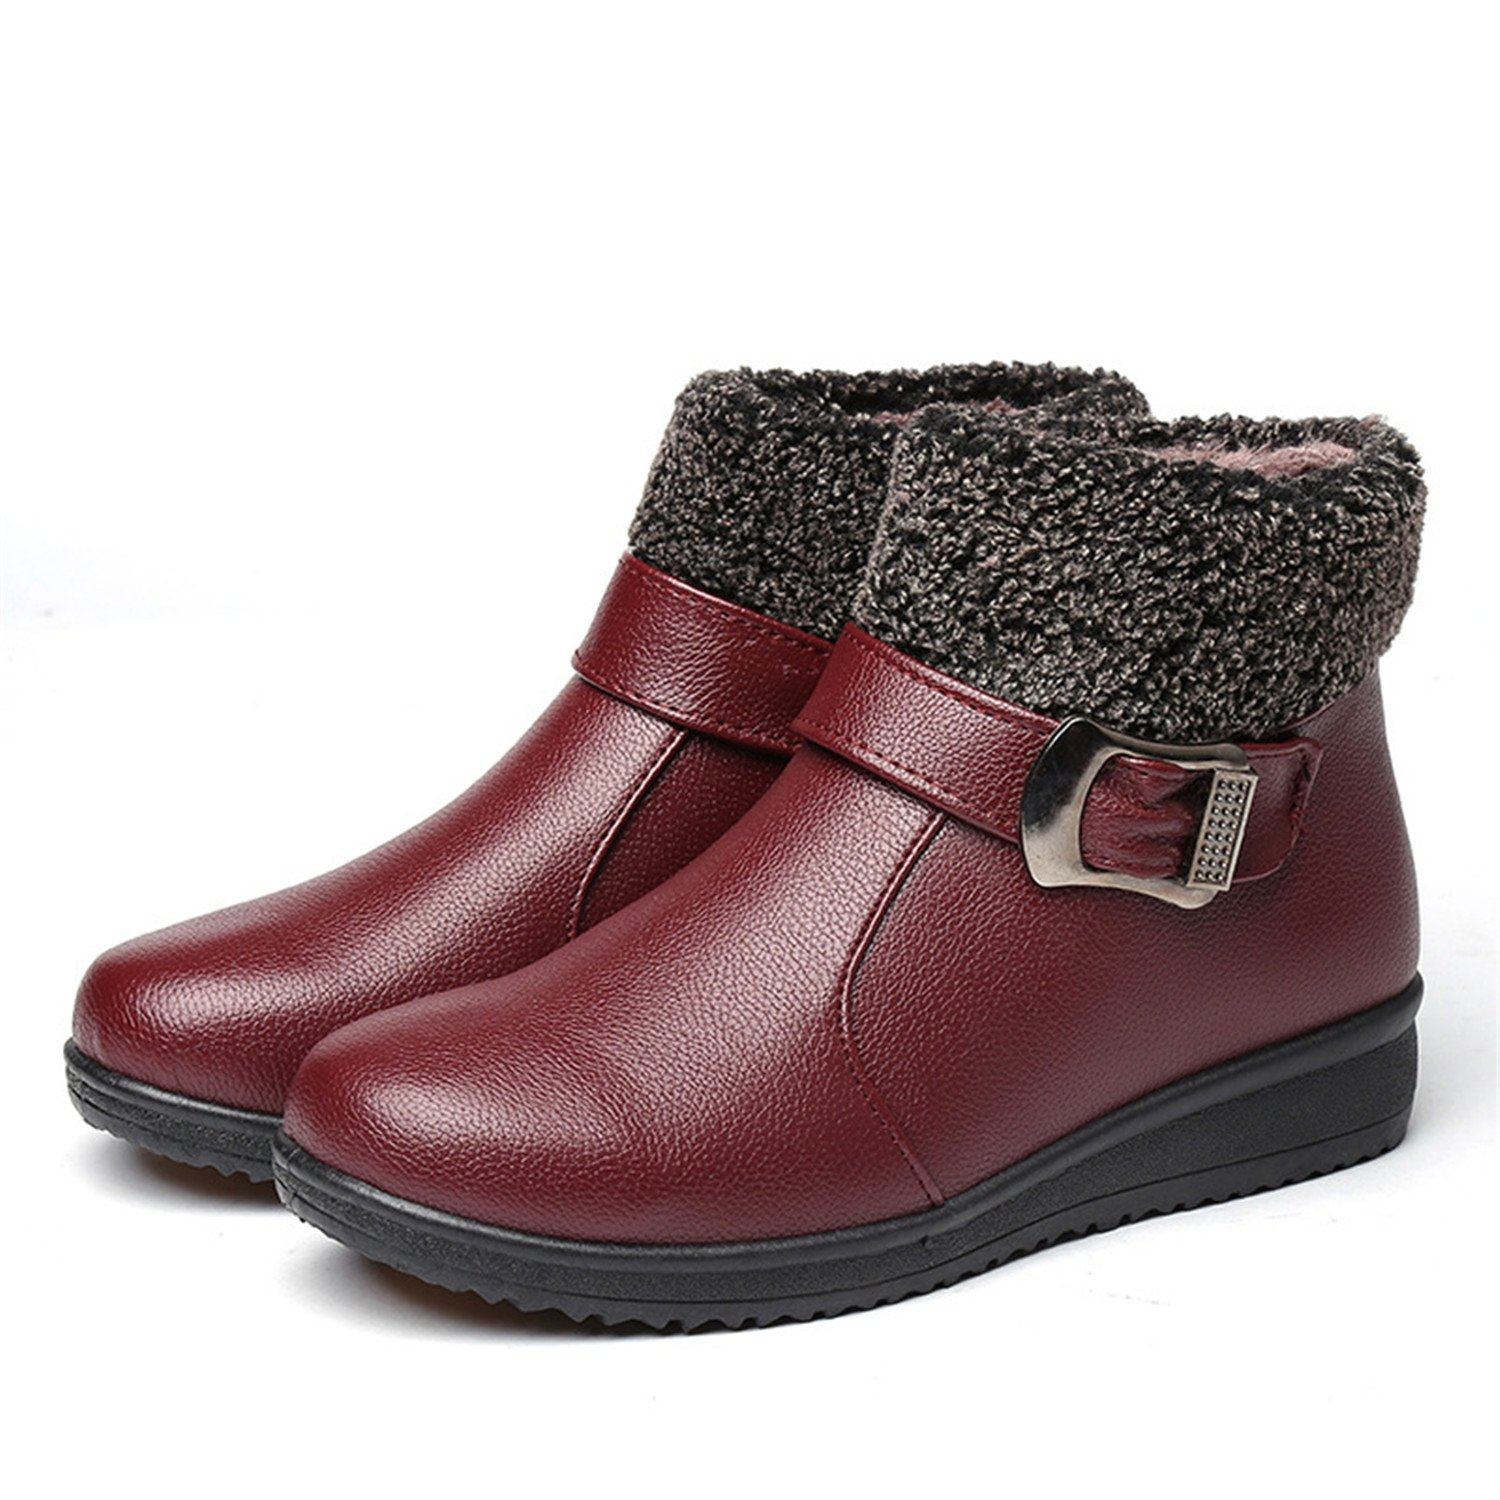 Better Annie Women Winter Boots Female Zip Ankle Shoes Boots Waterproof Warm Snow Boots Ladies Leather Shoes Ankle Woman Fur Botas Mujer Size 35-40 B077NF6QR7 Boots e7128d